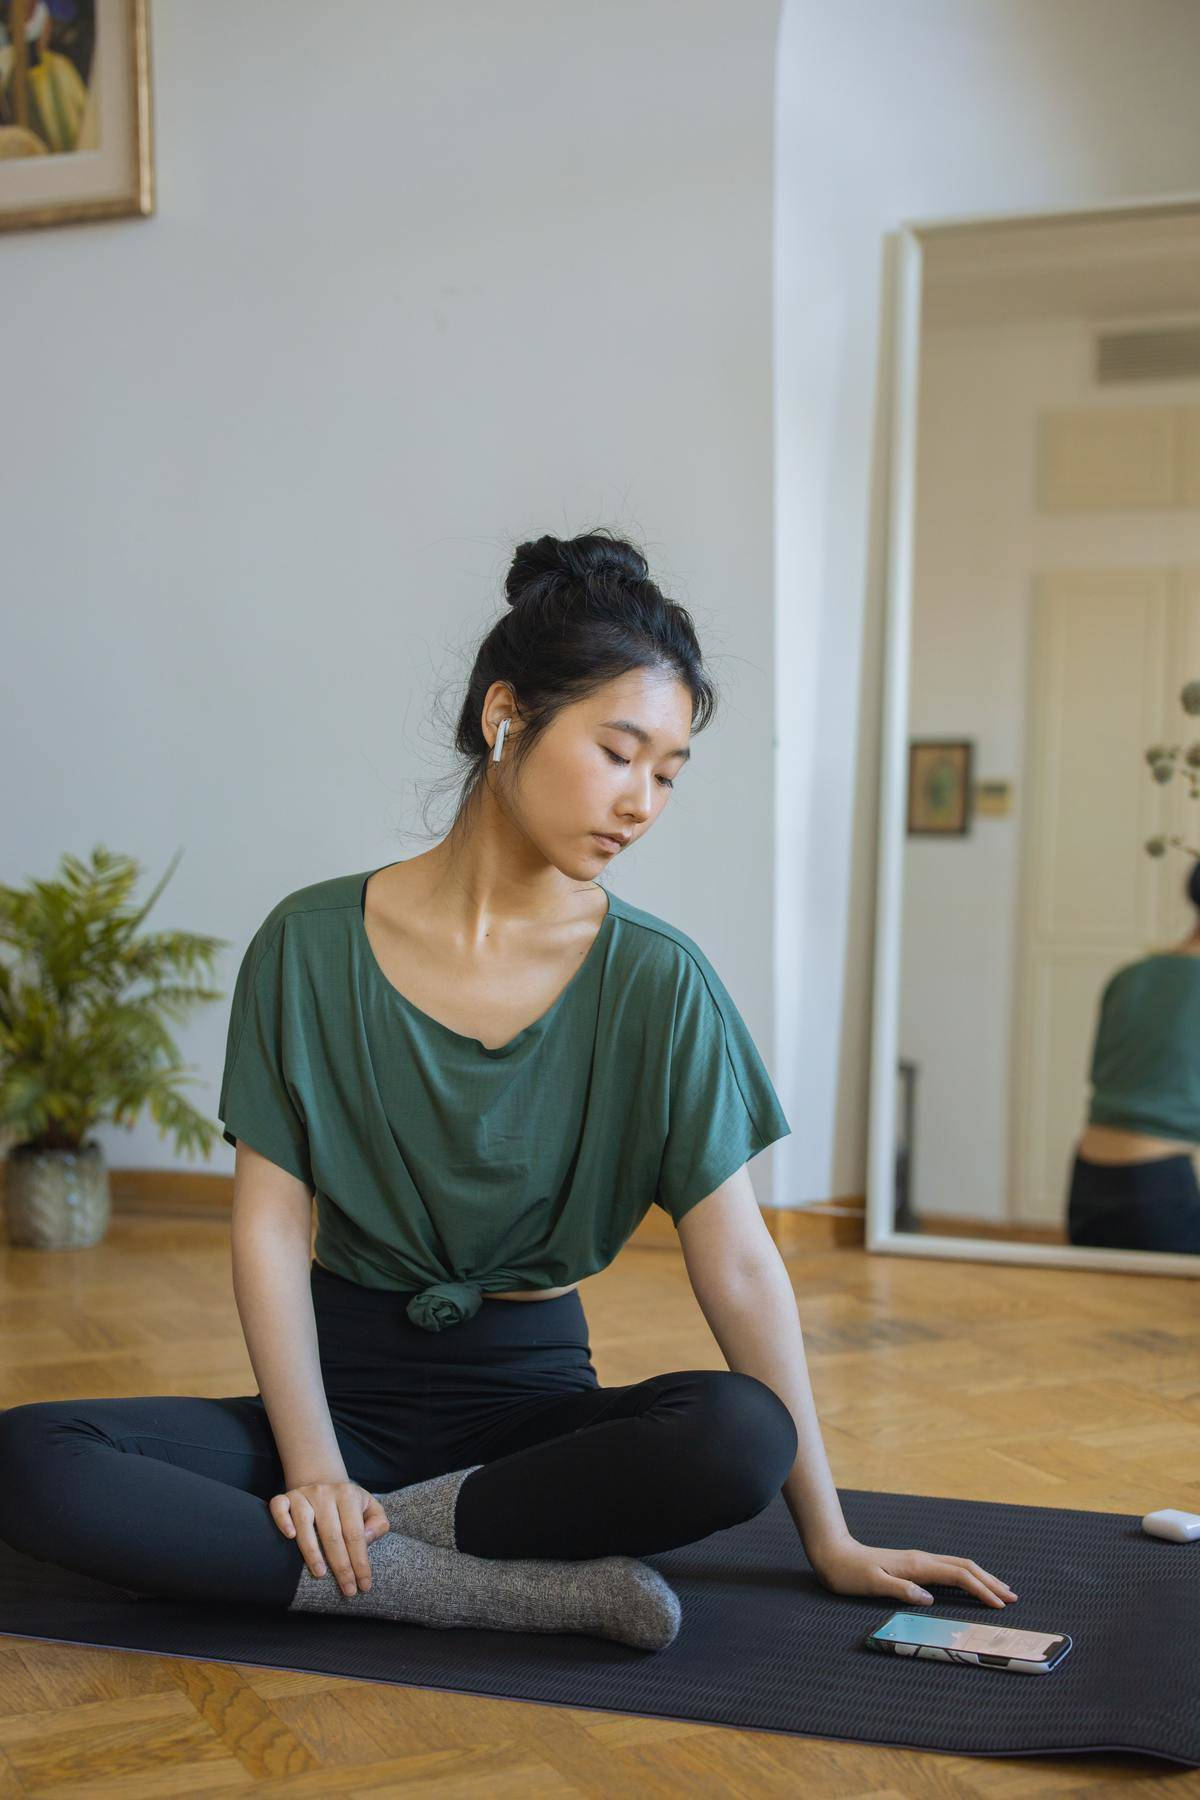 Woman sitting on yoga mat looking down at phone